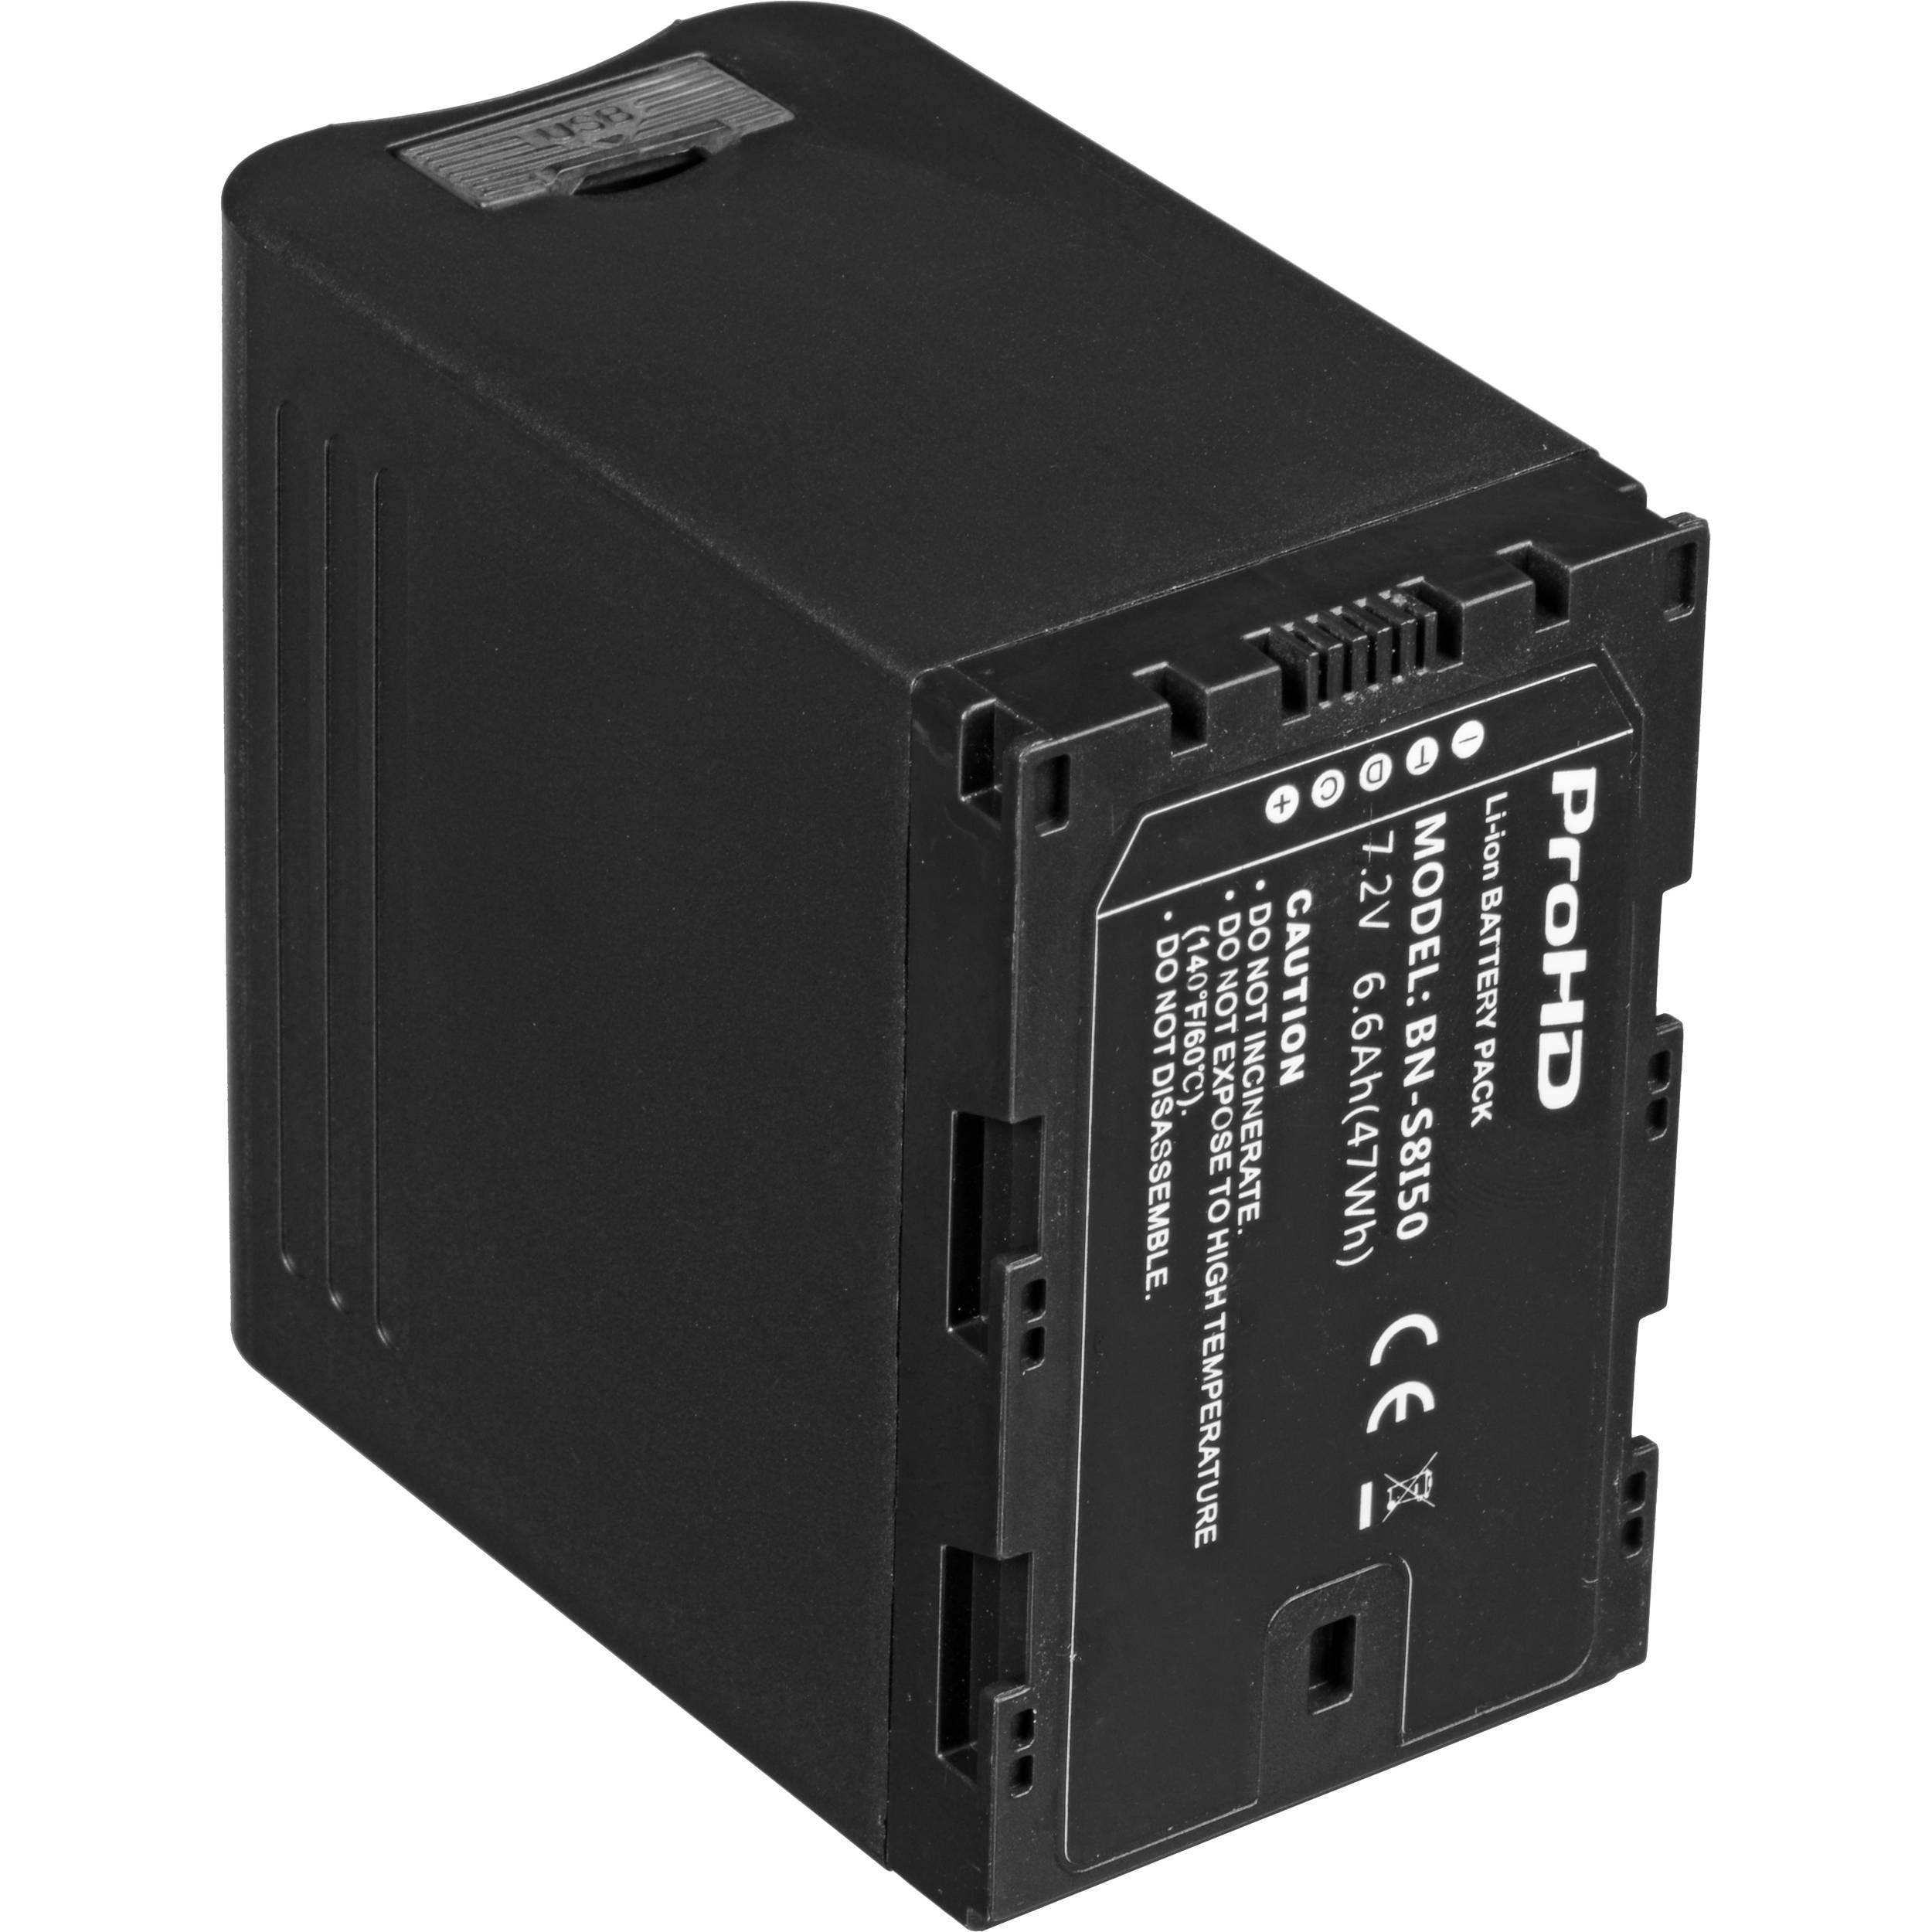 7.2V/6.6Ah LITHIUM ION BATTERY